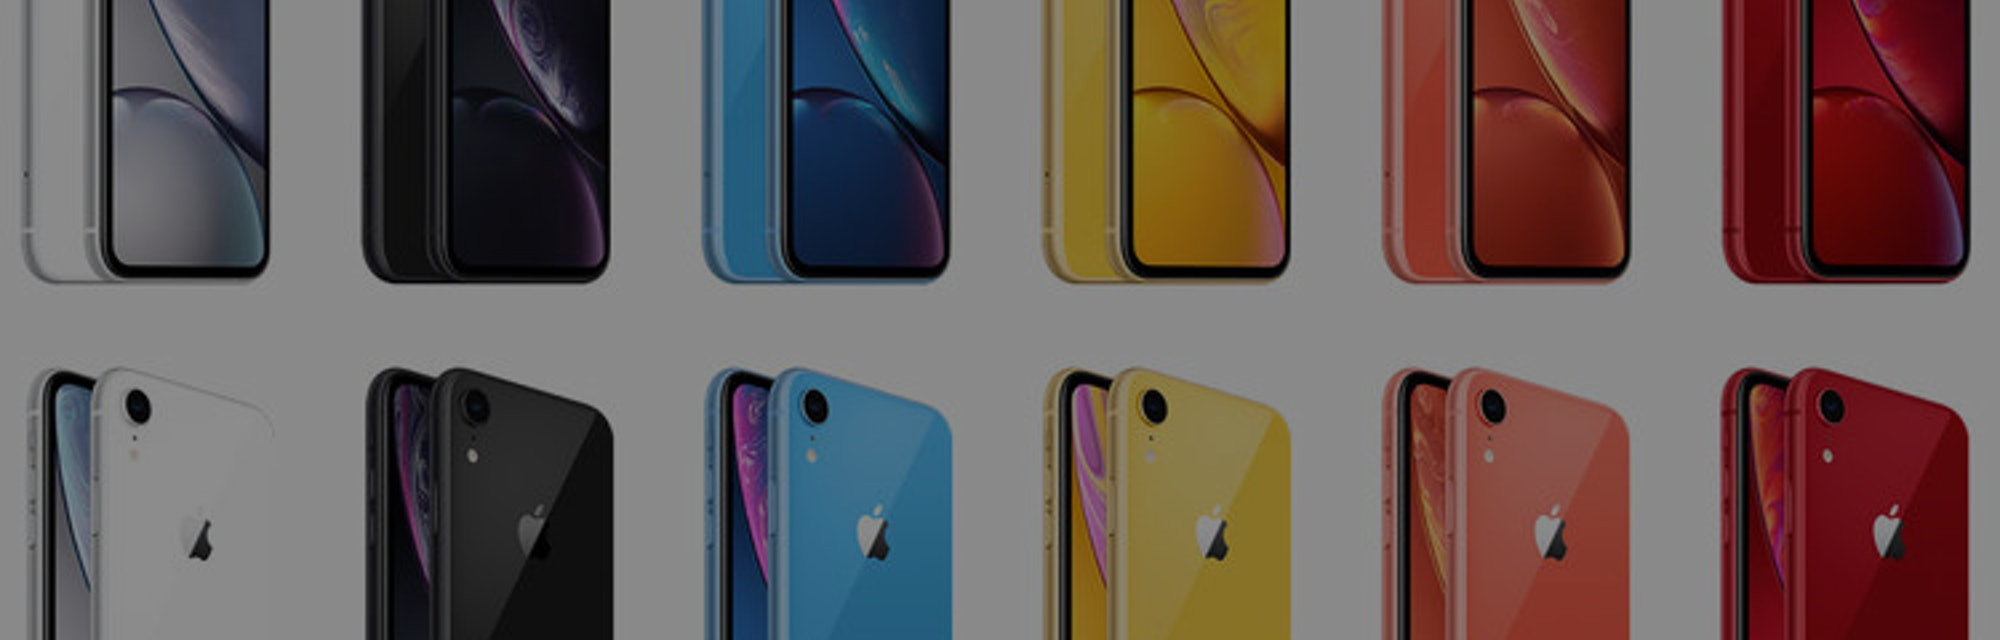 iPhone 11R: Specs, Release Date, Features & Upgrades for ...